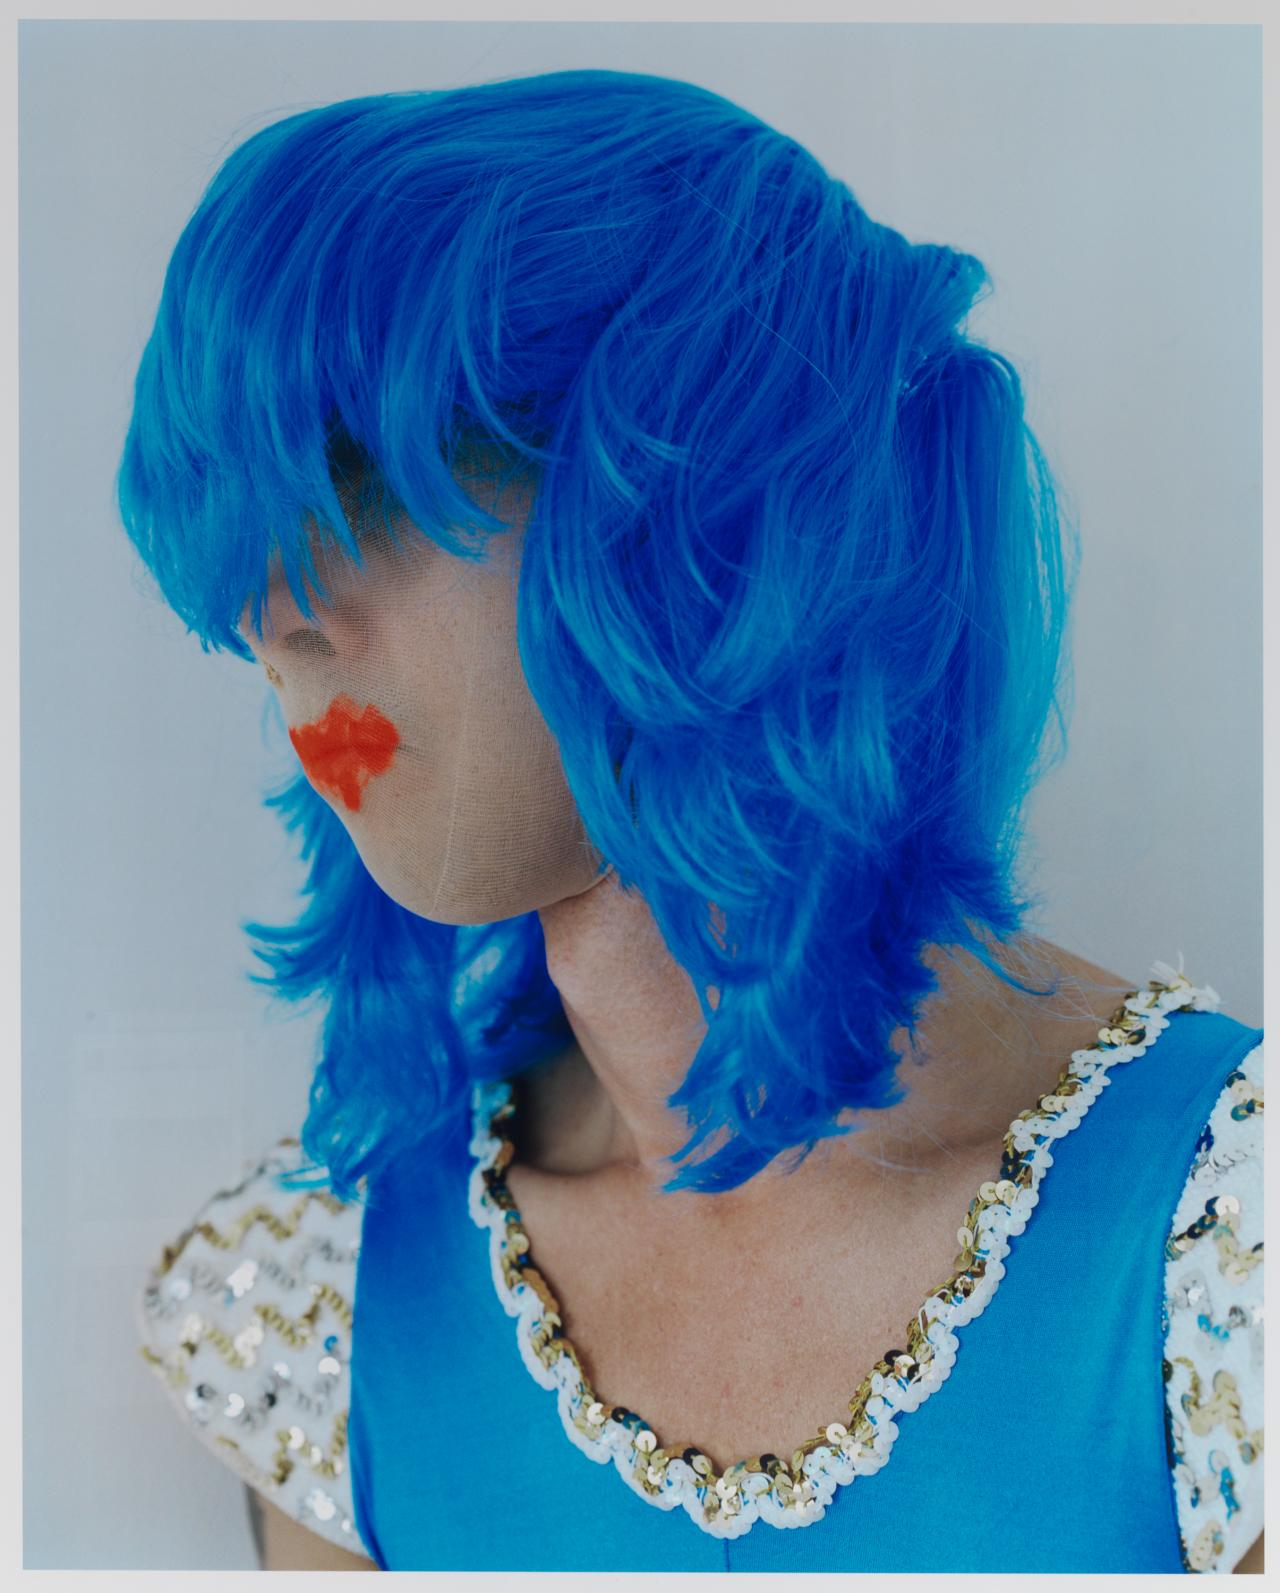 Polly BORLAND Untitled (Nick Cave in a blue wig) 2010